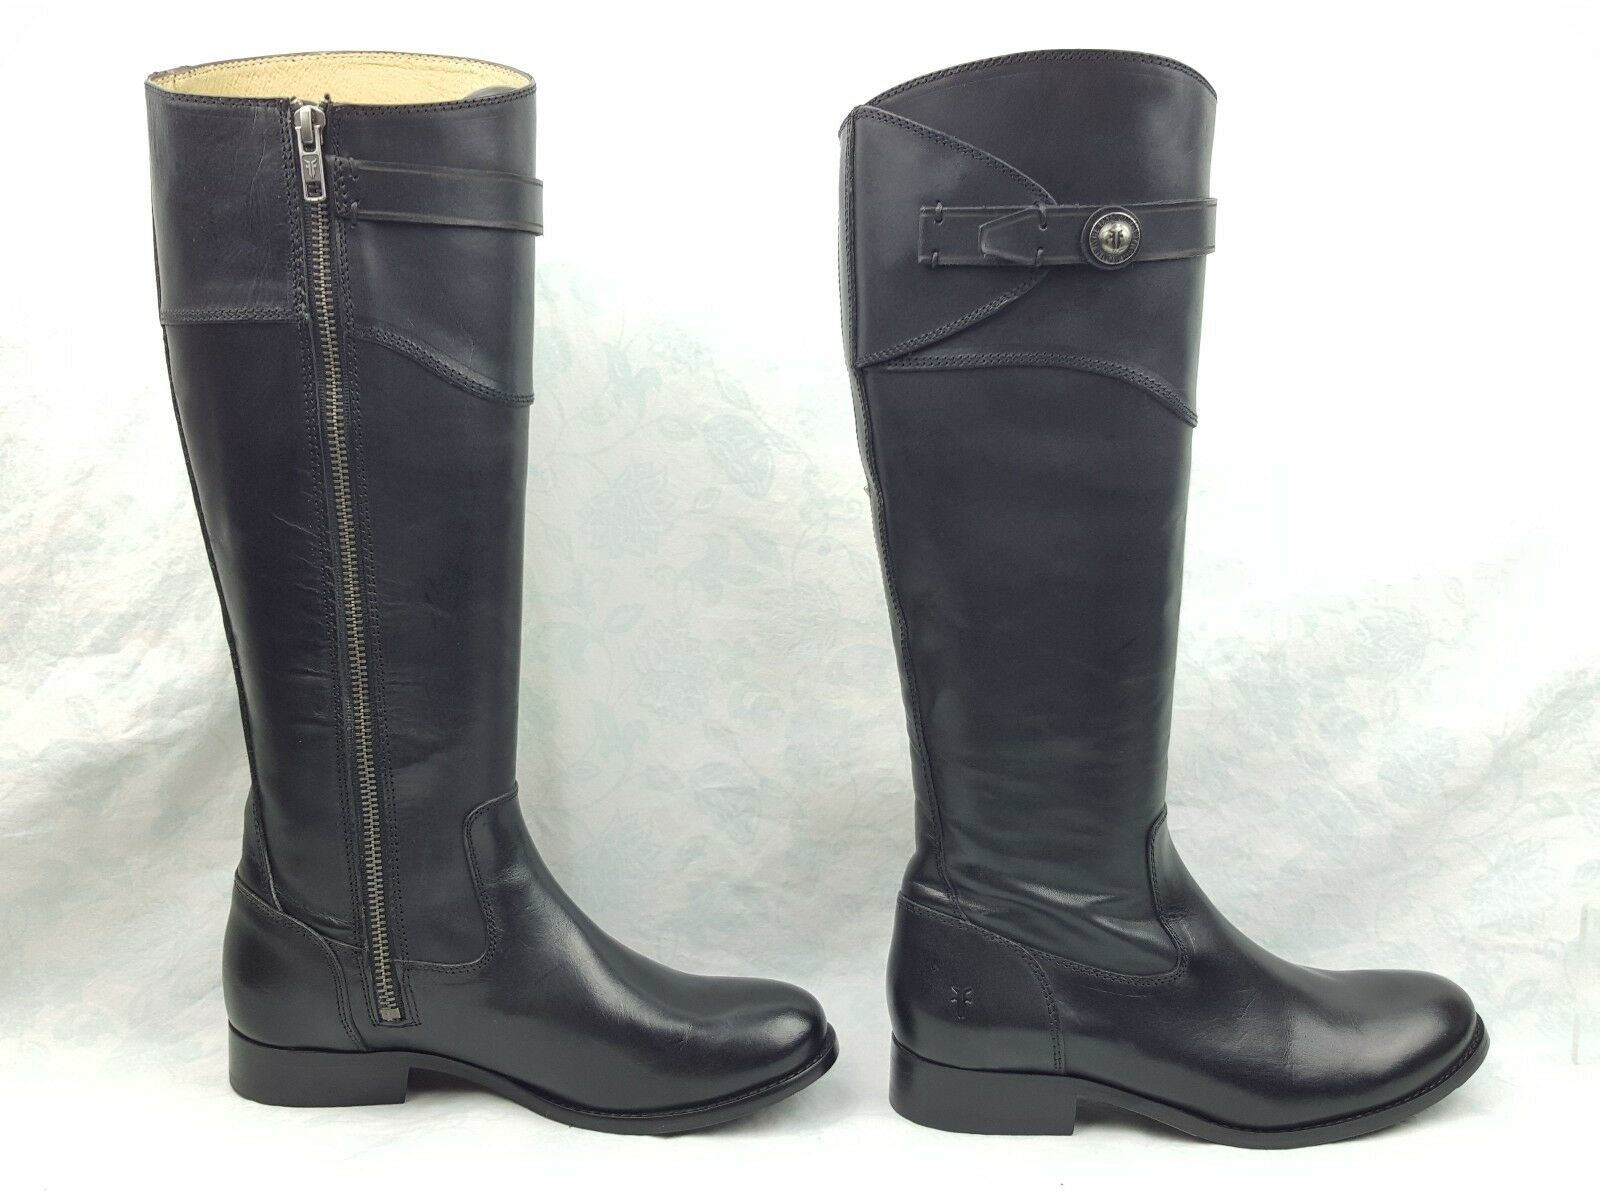 NWOB Frye Molly Button Button Button Black Leather Side Zip Tall Riding Boots Women's Sz 6B dcdc63